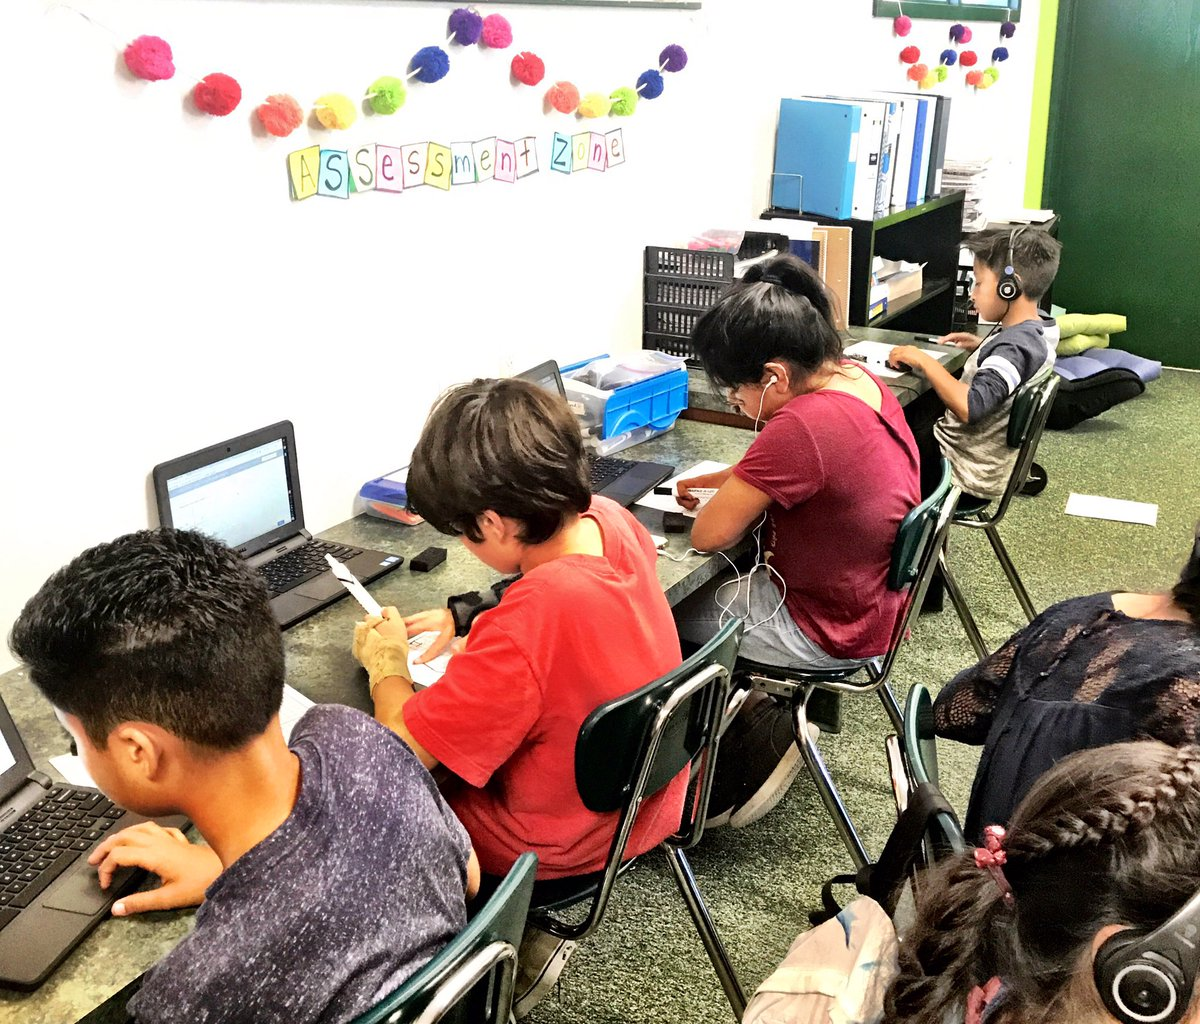 Jessica Borah A Twitter The Assessment Zone Was Busy Today When Was The Last Time You Had Students Begging To Take An Assessment Rmmsfam Summitlearning Https T Co Cldzzsb9aw Its total obligation of contribution is rs. twitter